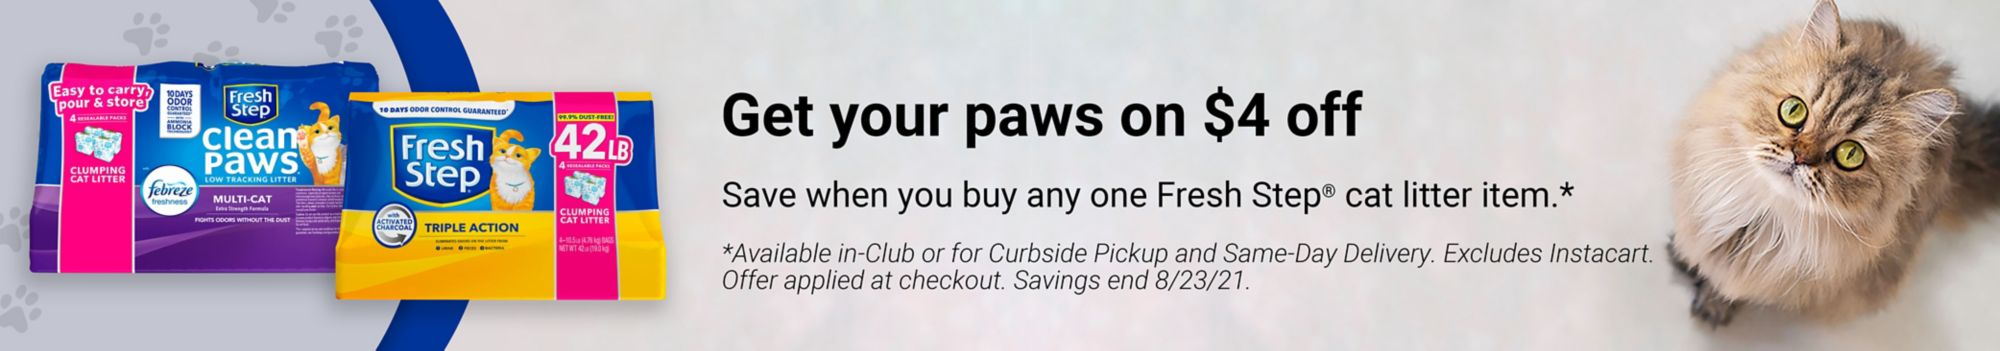 Get your paws on $4 off. Save when you buy any one Fresh Step cat litter item. Available in-Club or for Curbside Pickup and Same-Day Delivery. Excludes Instacart.  Offer applied at checkout. Savings end 8/23/21.